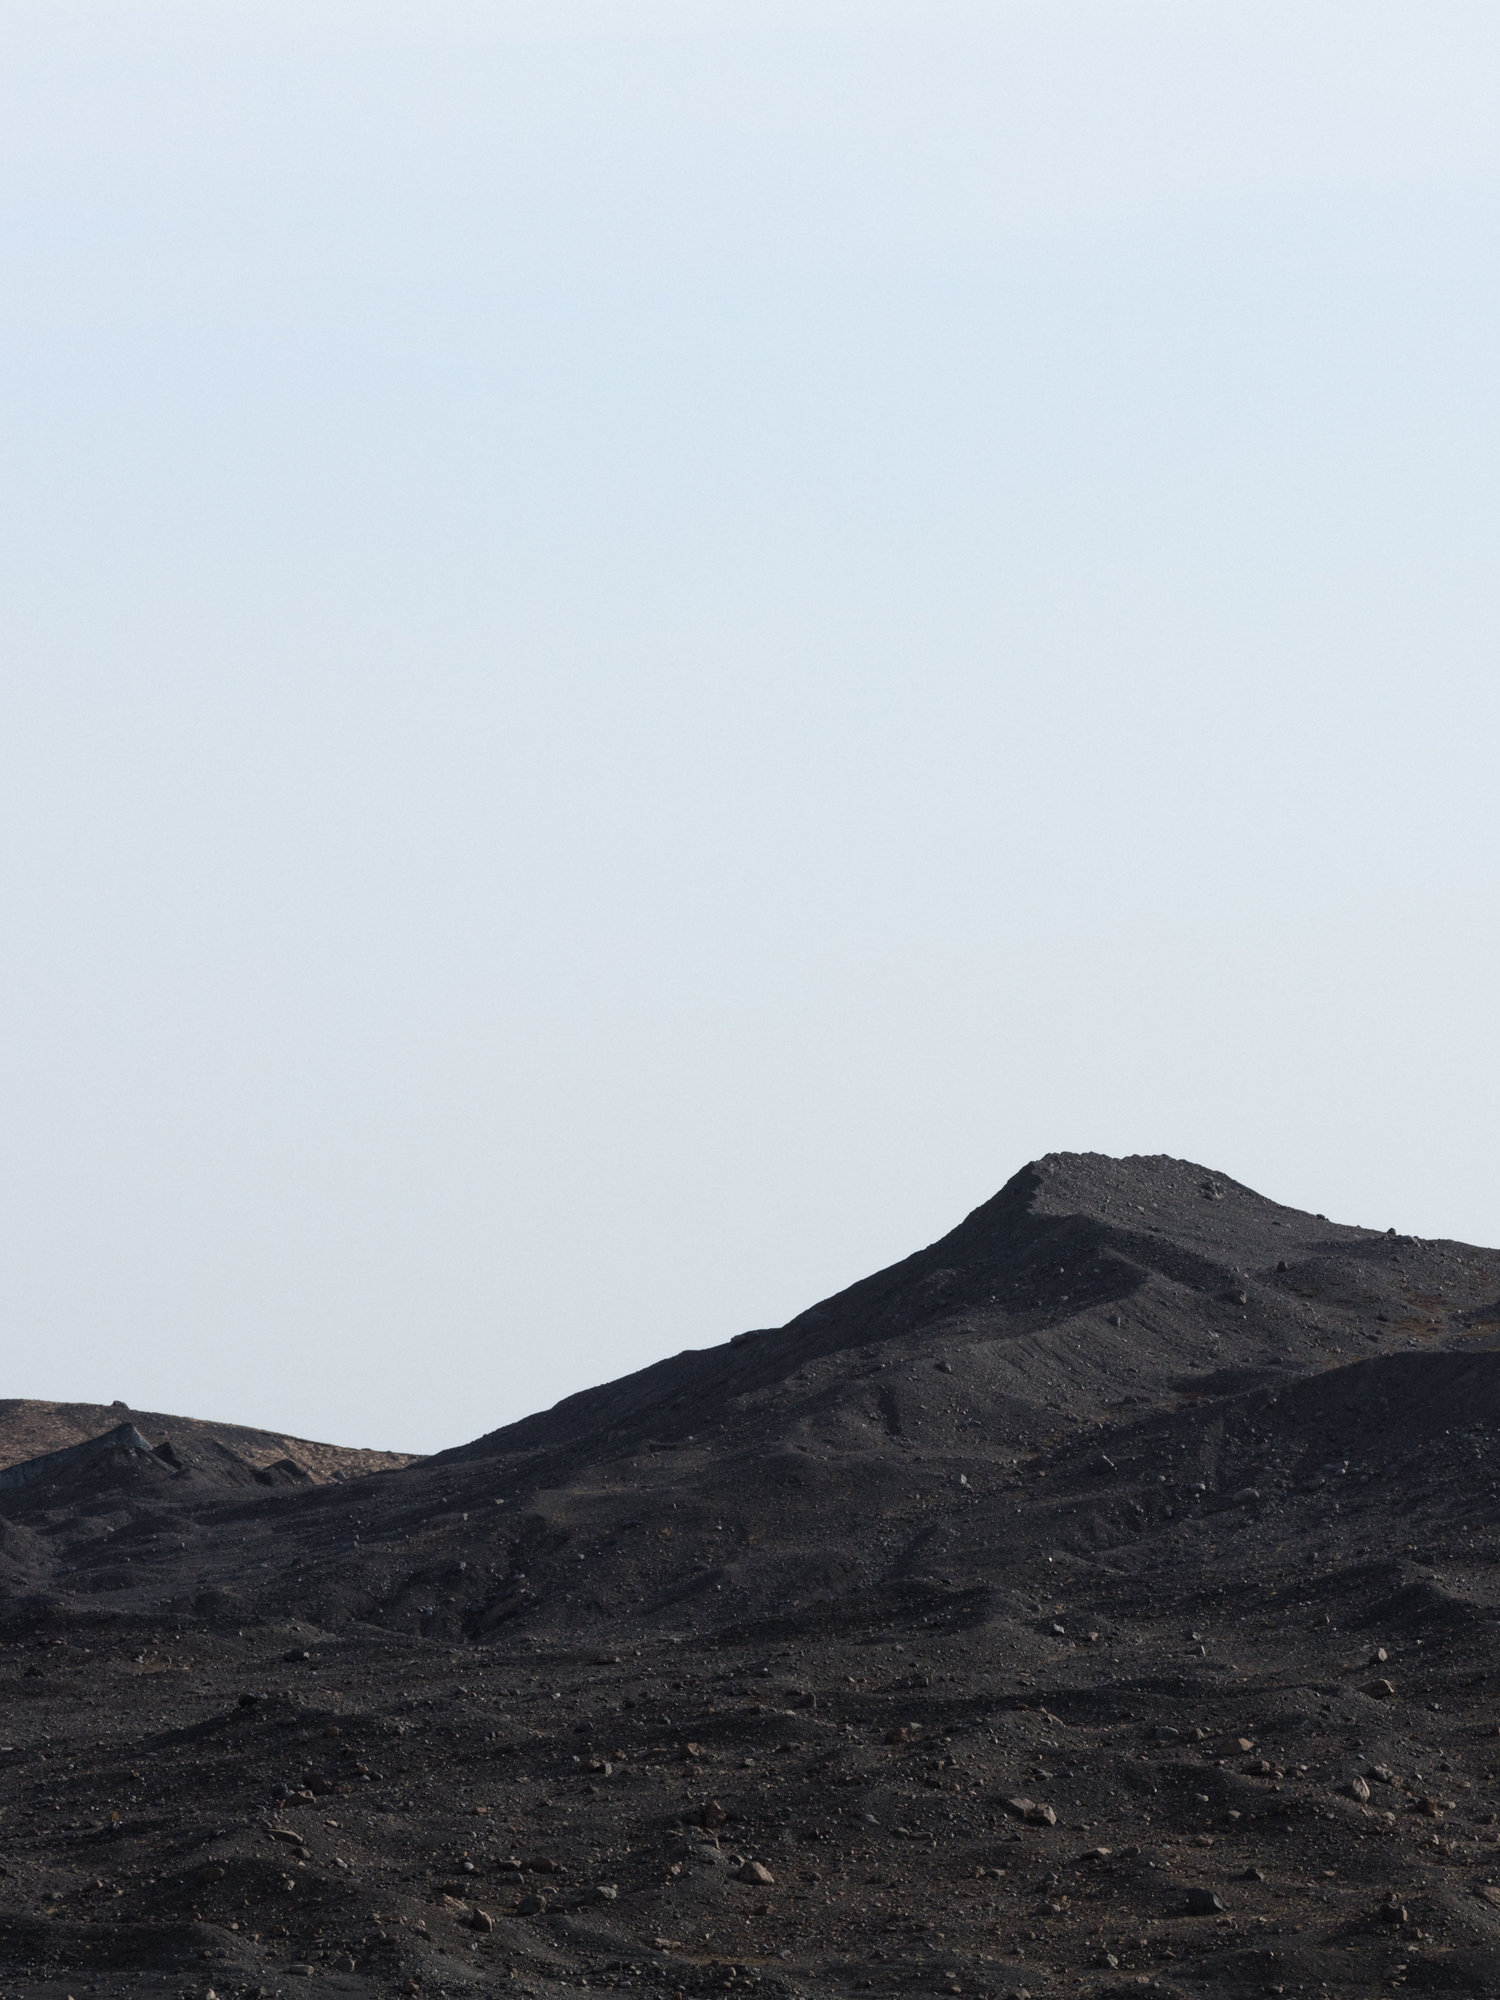 Black+mountain,+South+Iceland+-+Faune.jpg